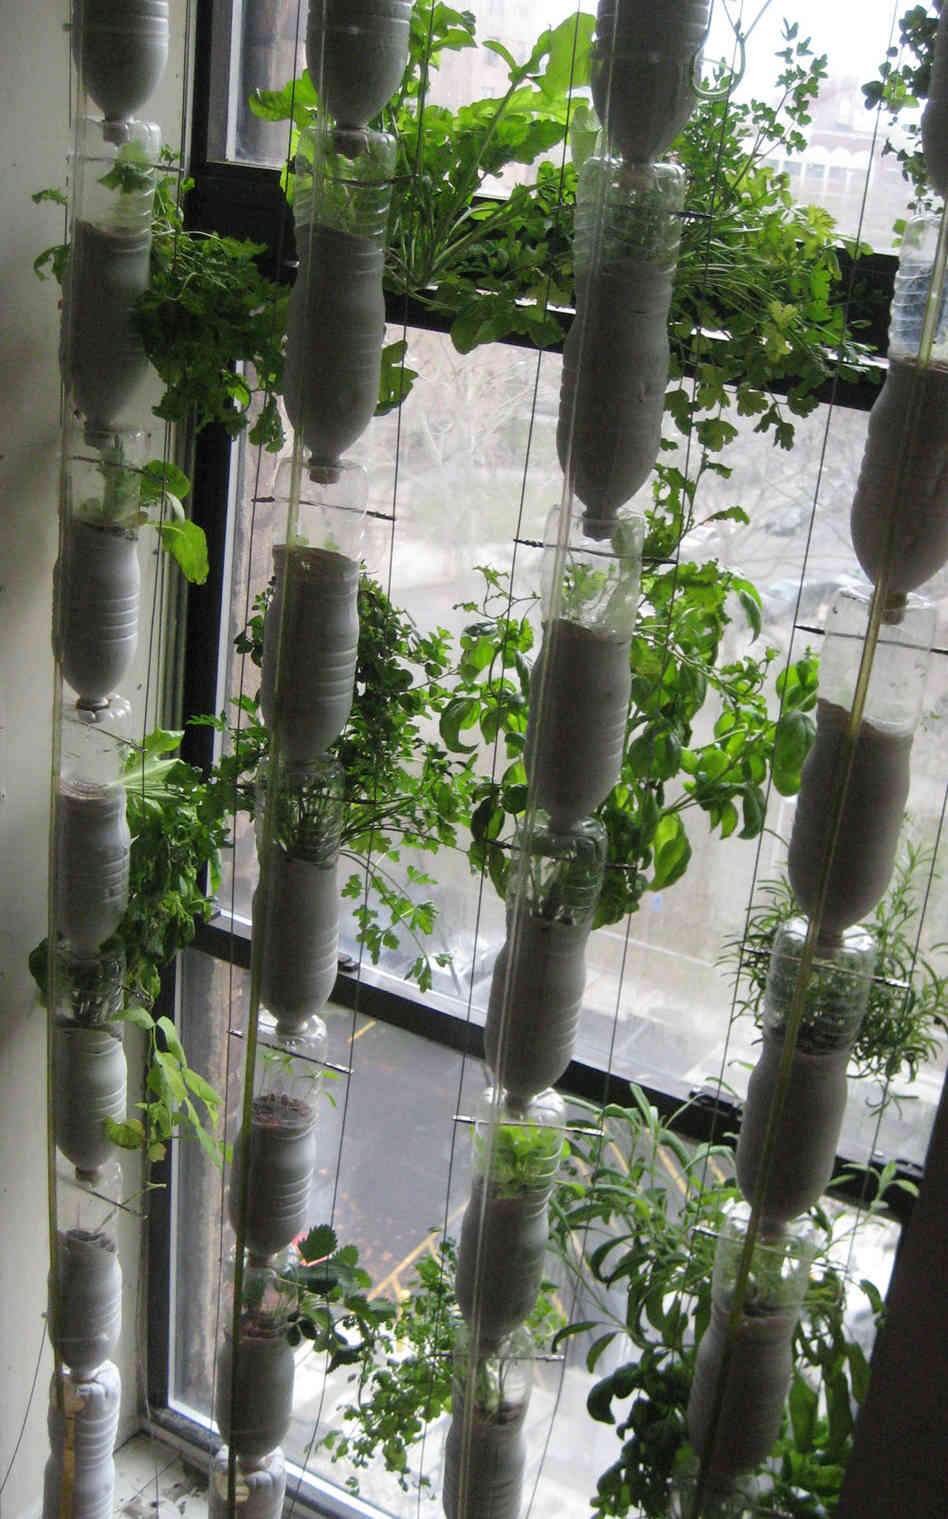 Window Farming A Do It Yourself Veggie Venture 500eco